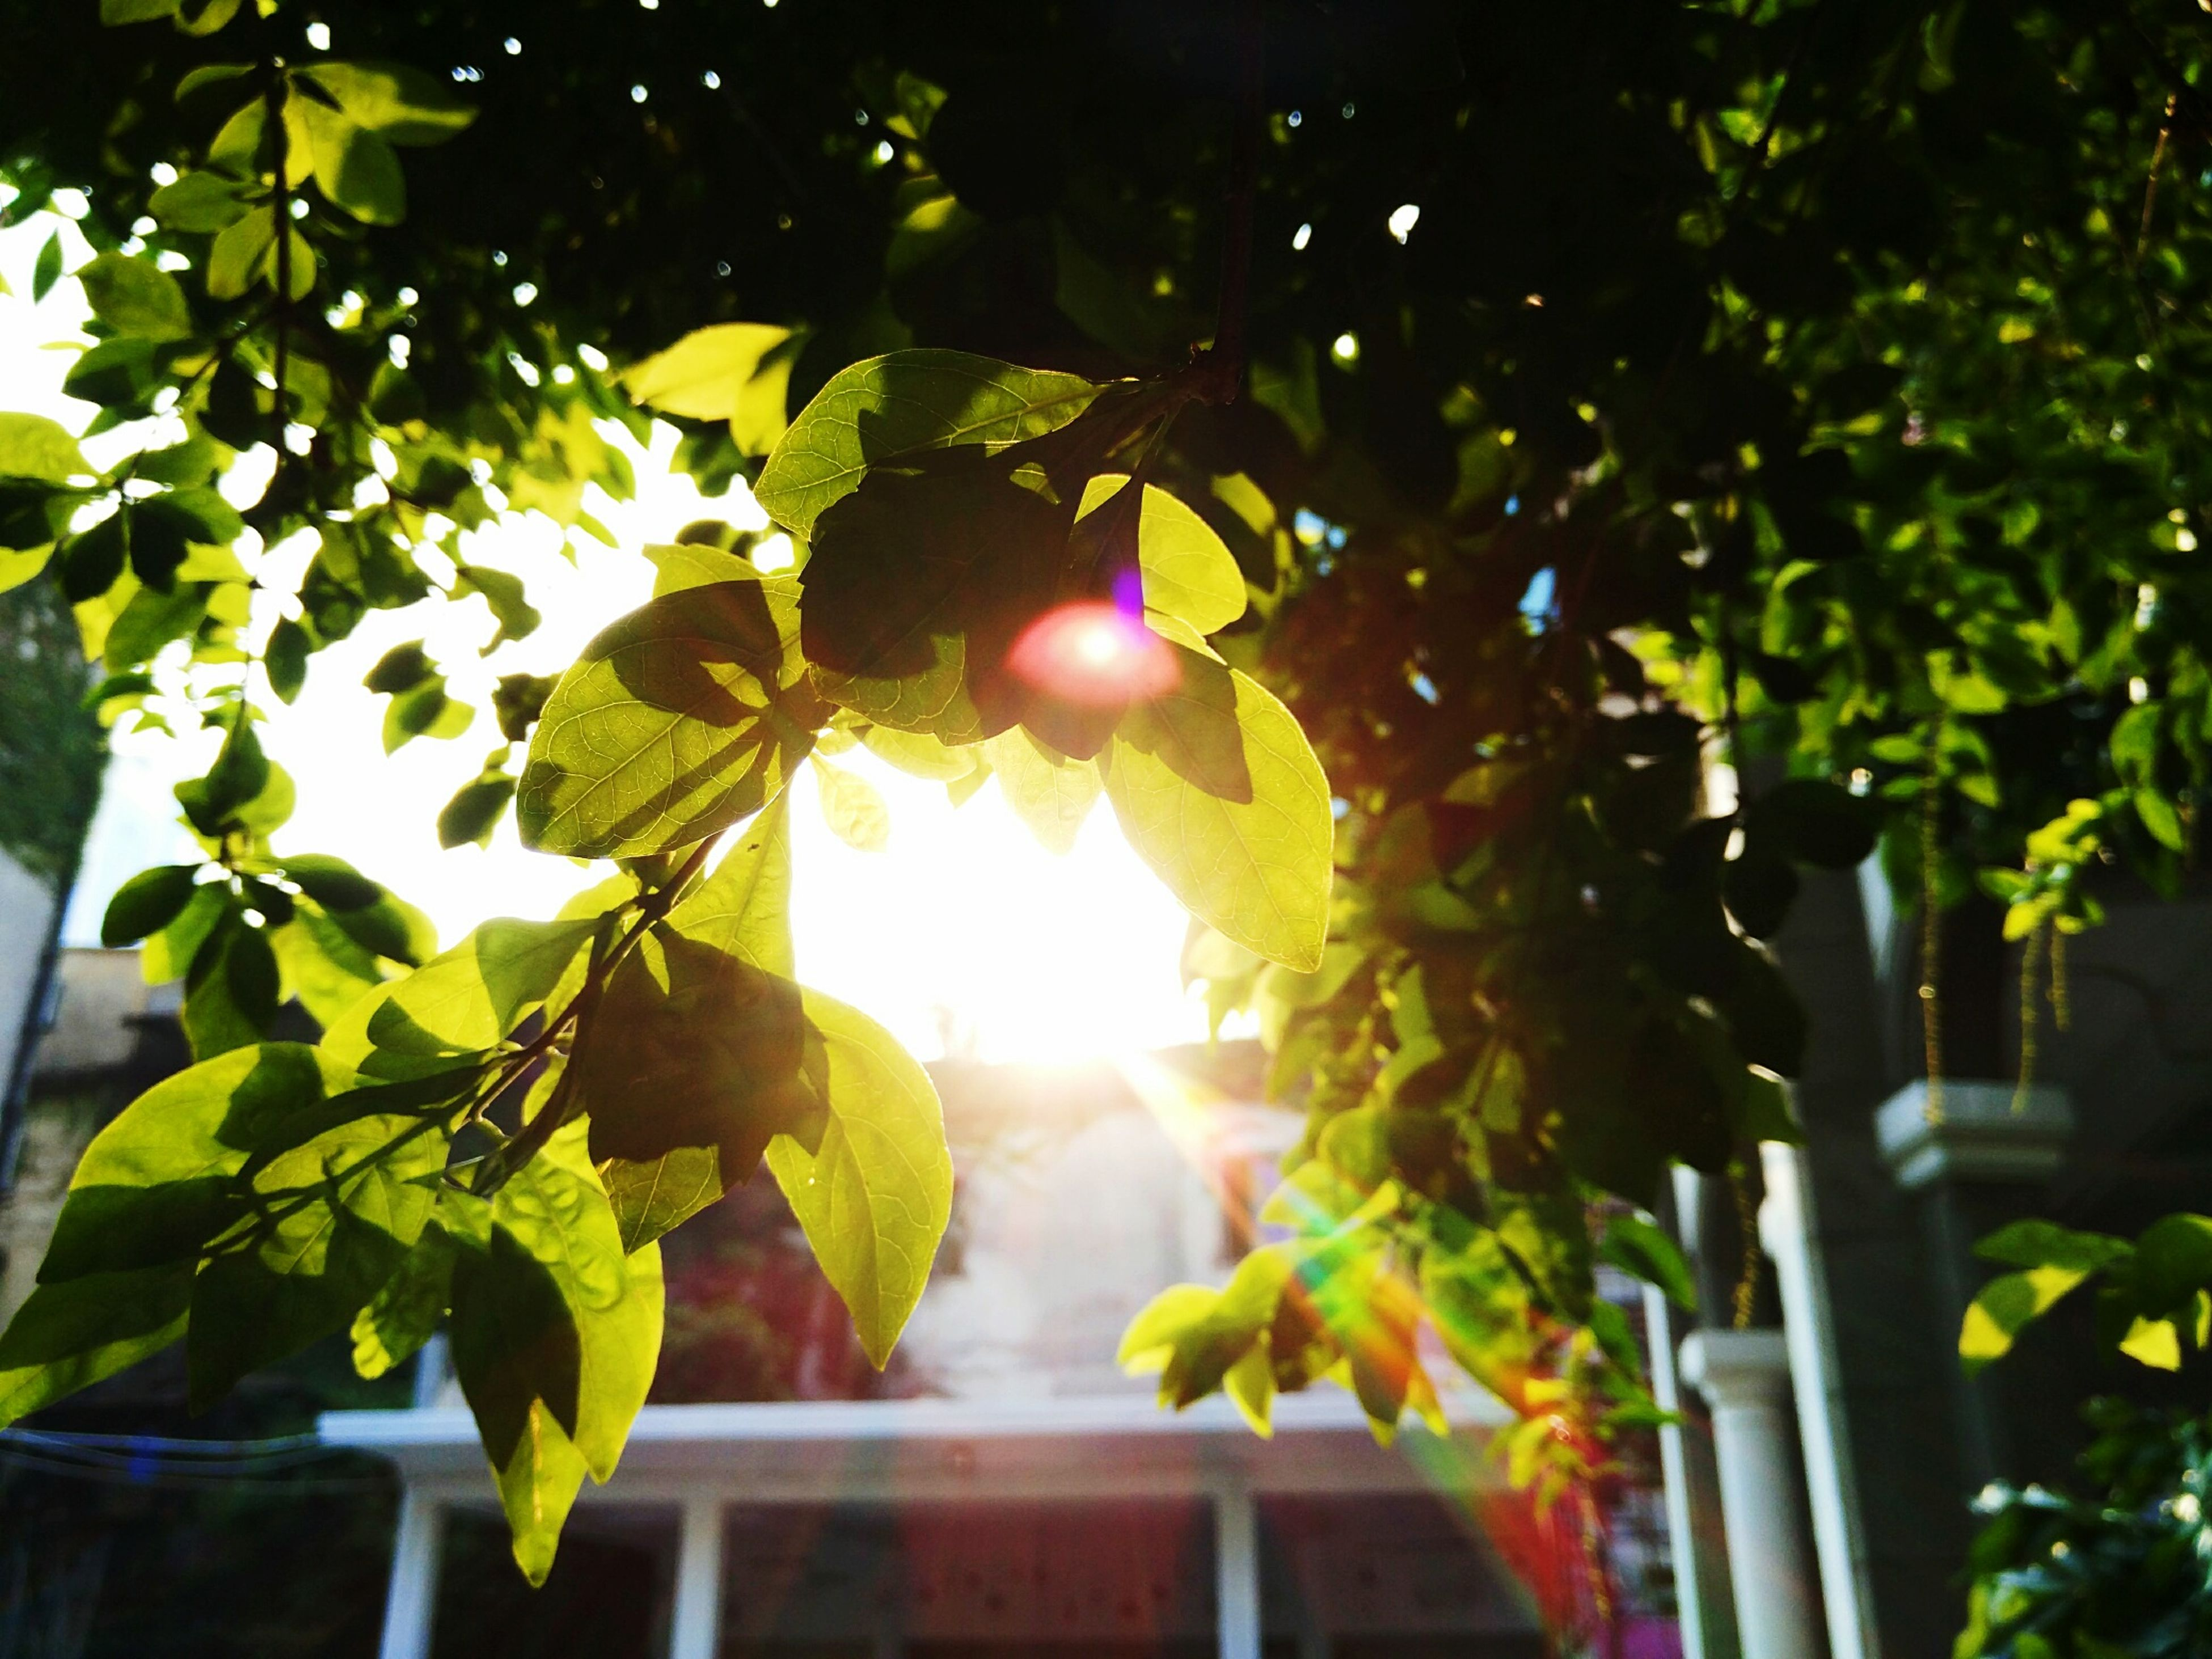 tree, leaf, low angle view, branch, growth, fruit, hanging, green color, sunlight, food and drink, close-up, nature, freshness, focus on foreground, lens flare, no people, day, lighting equipment, outdoors, sun